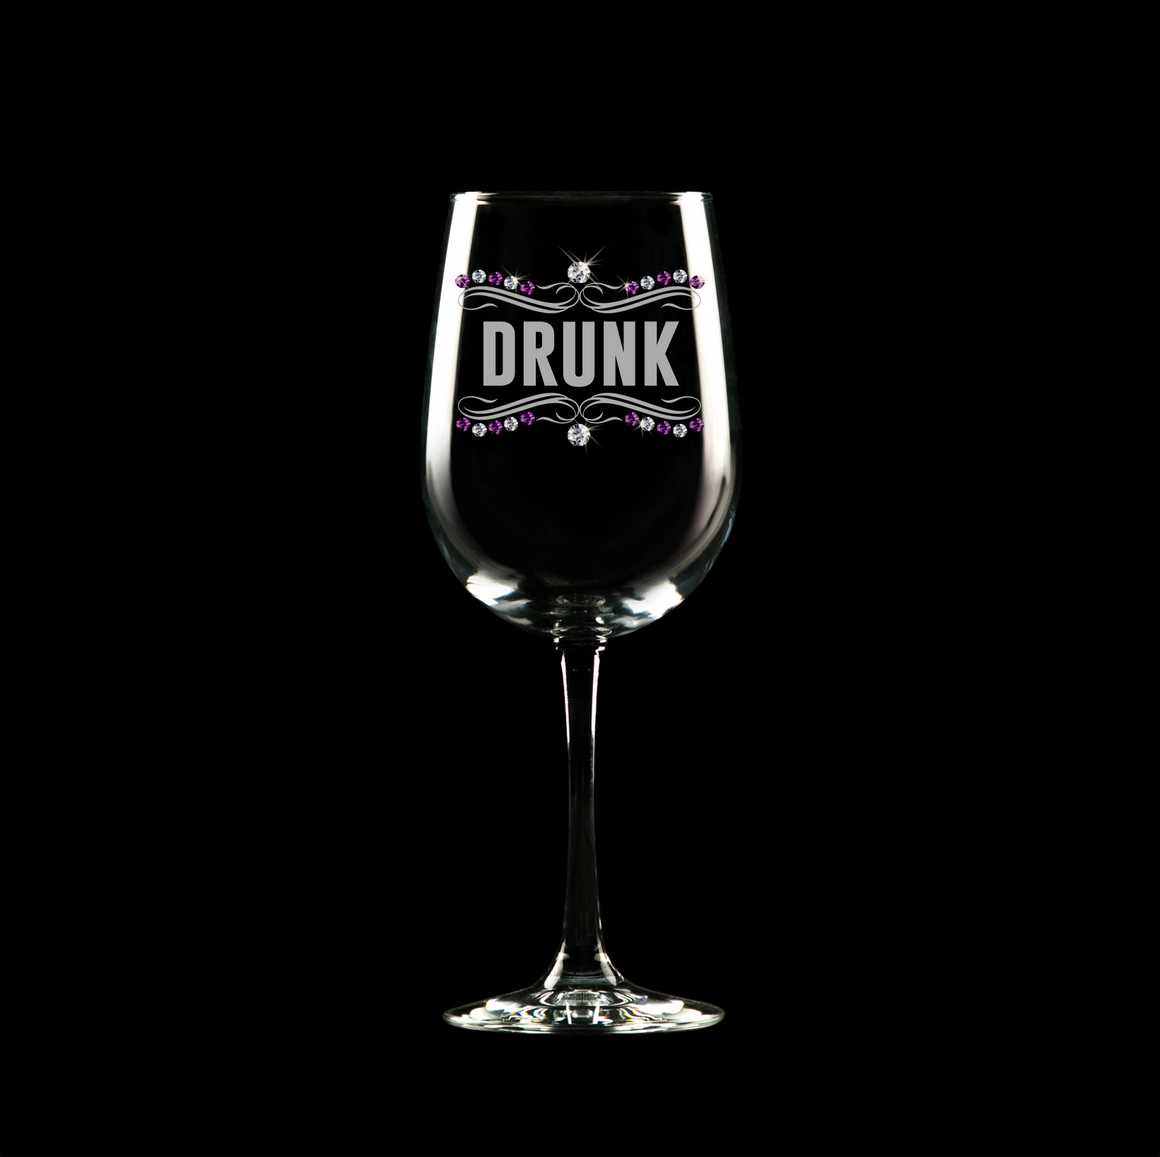 DRUNK Wine Glass